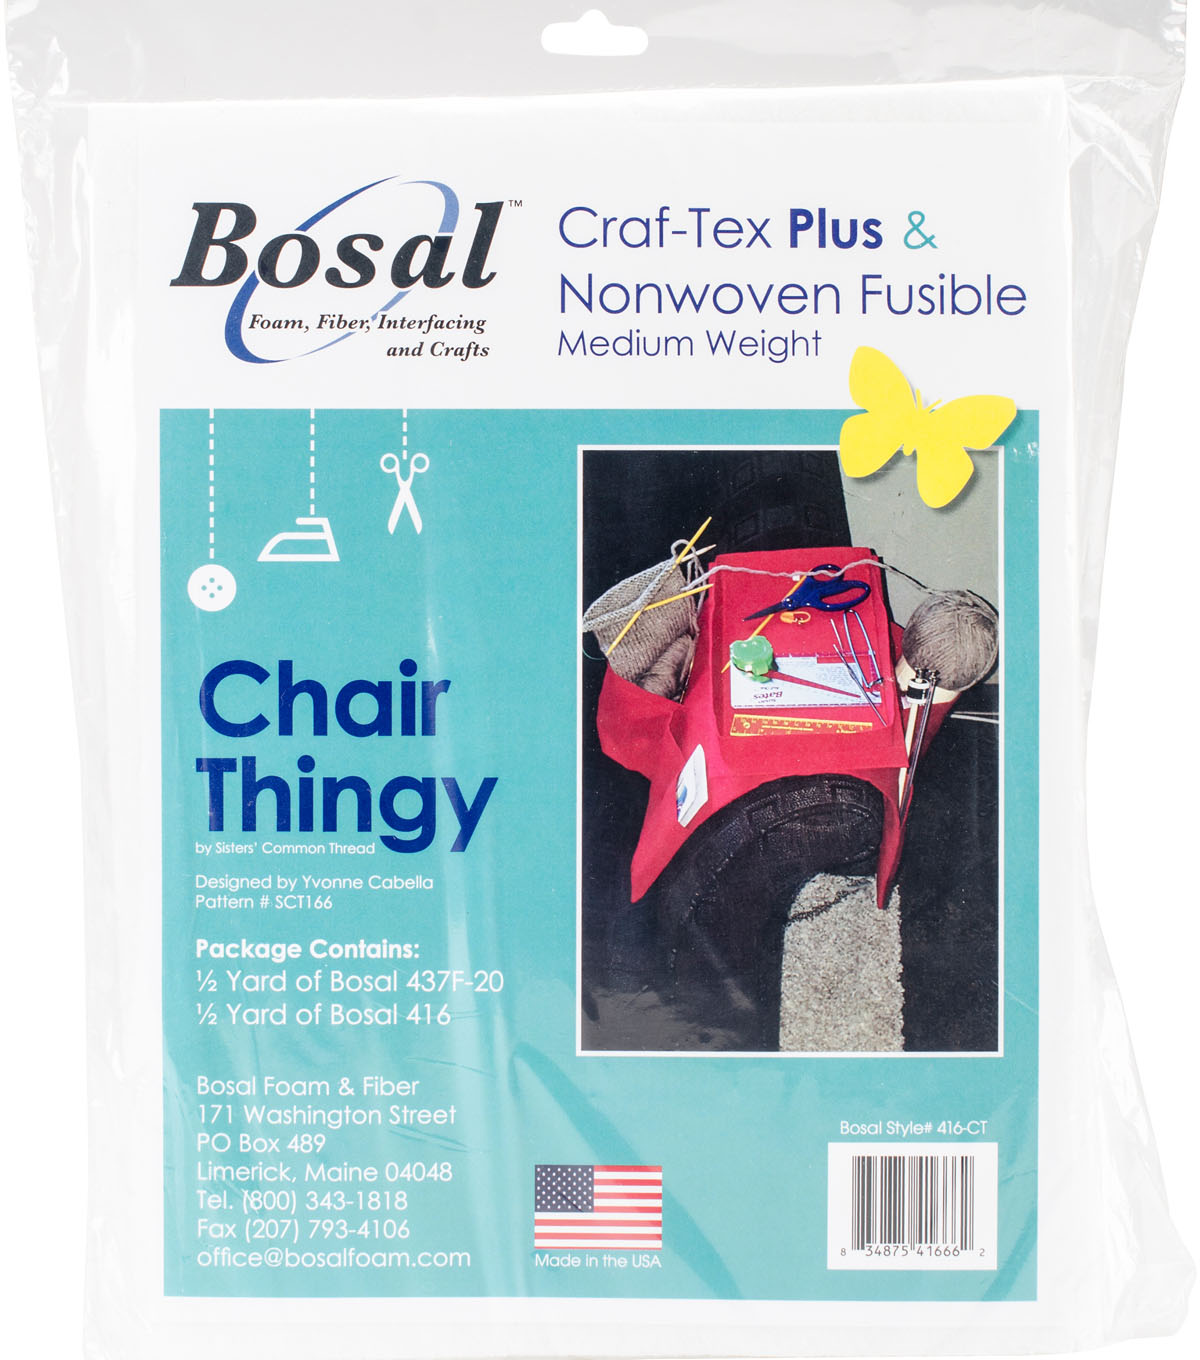 Bosal Craf-Tex Plus & Nonwoven Fusible Medium Weight-Chair Thingy